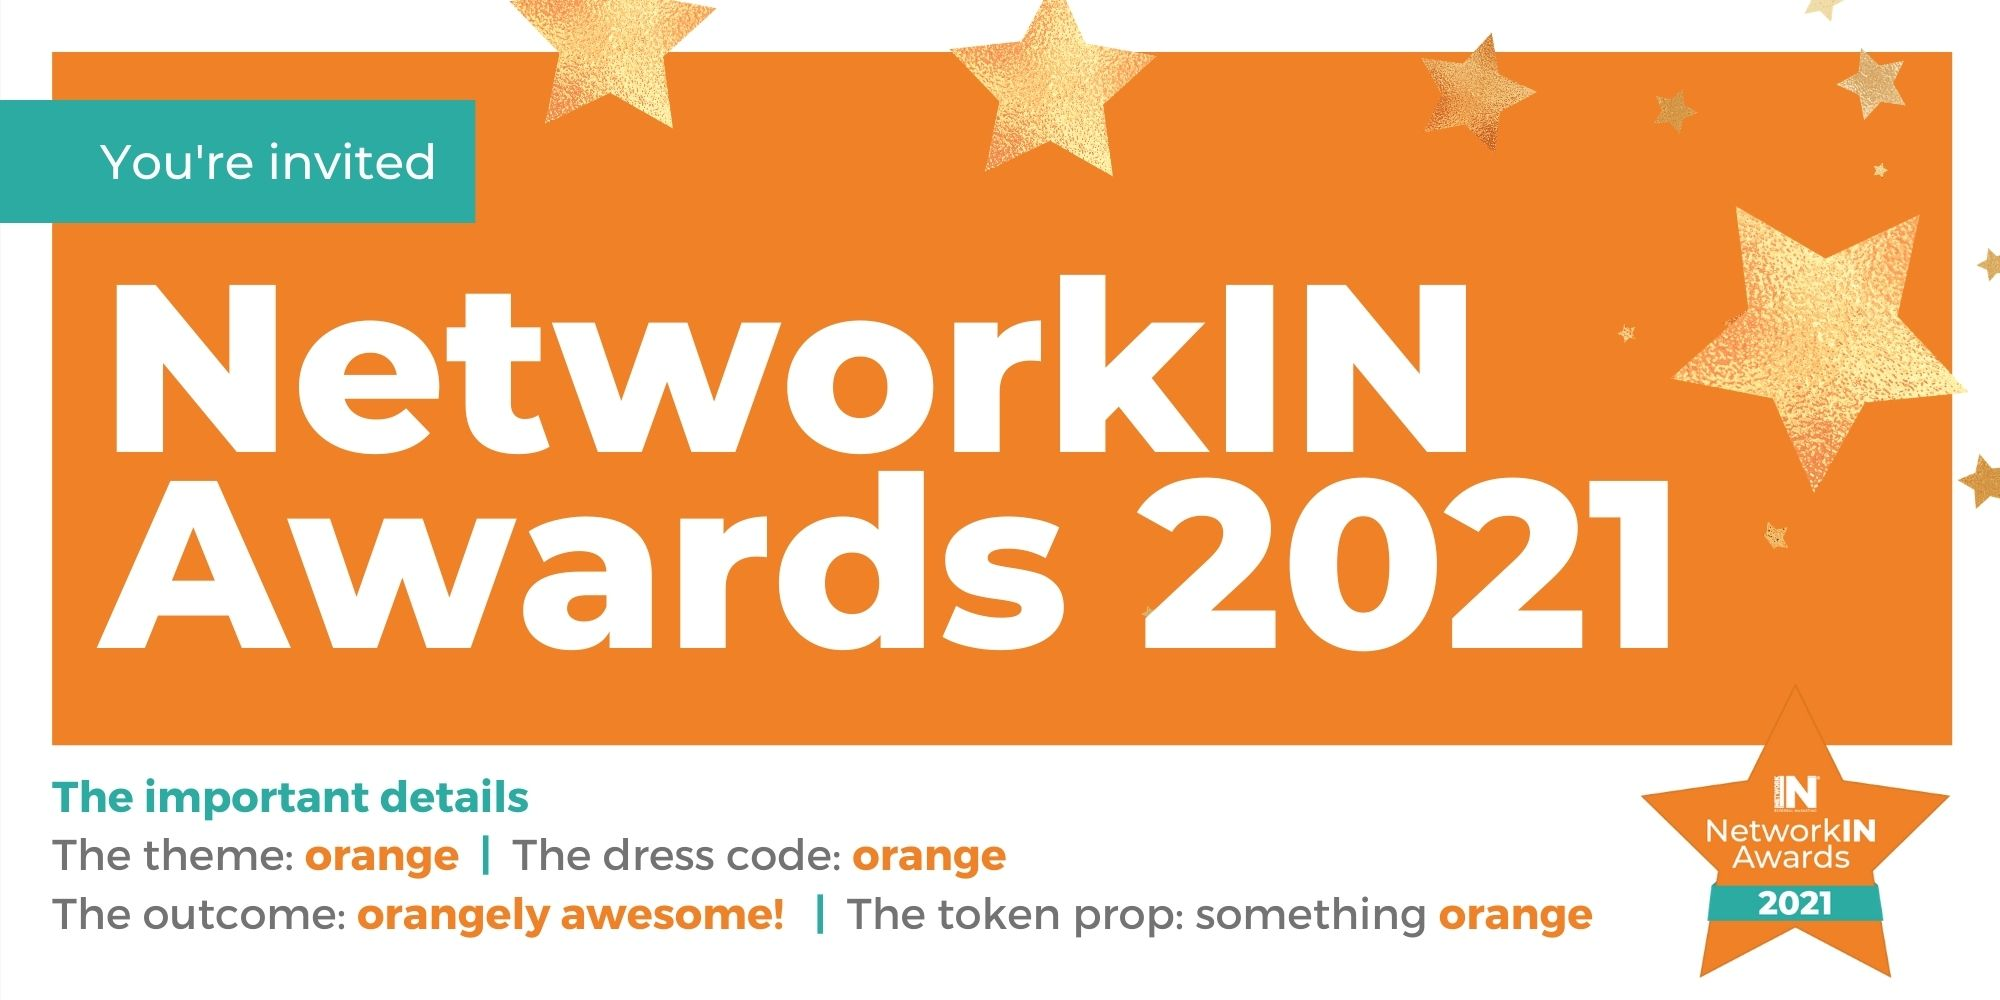 NetworkIN Awards 2021 event